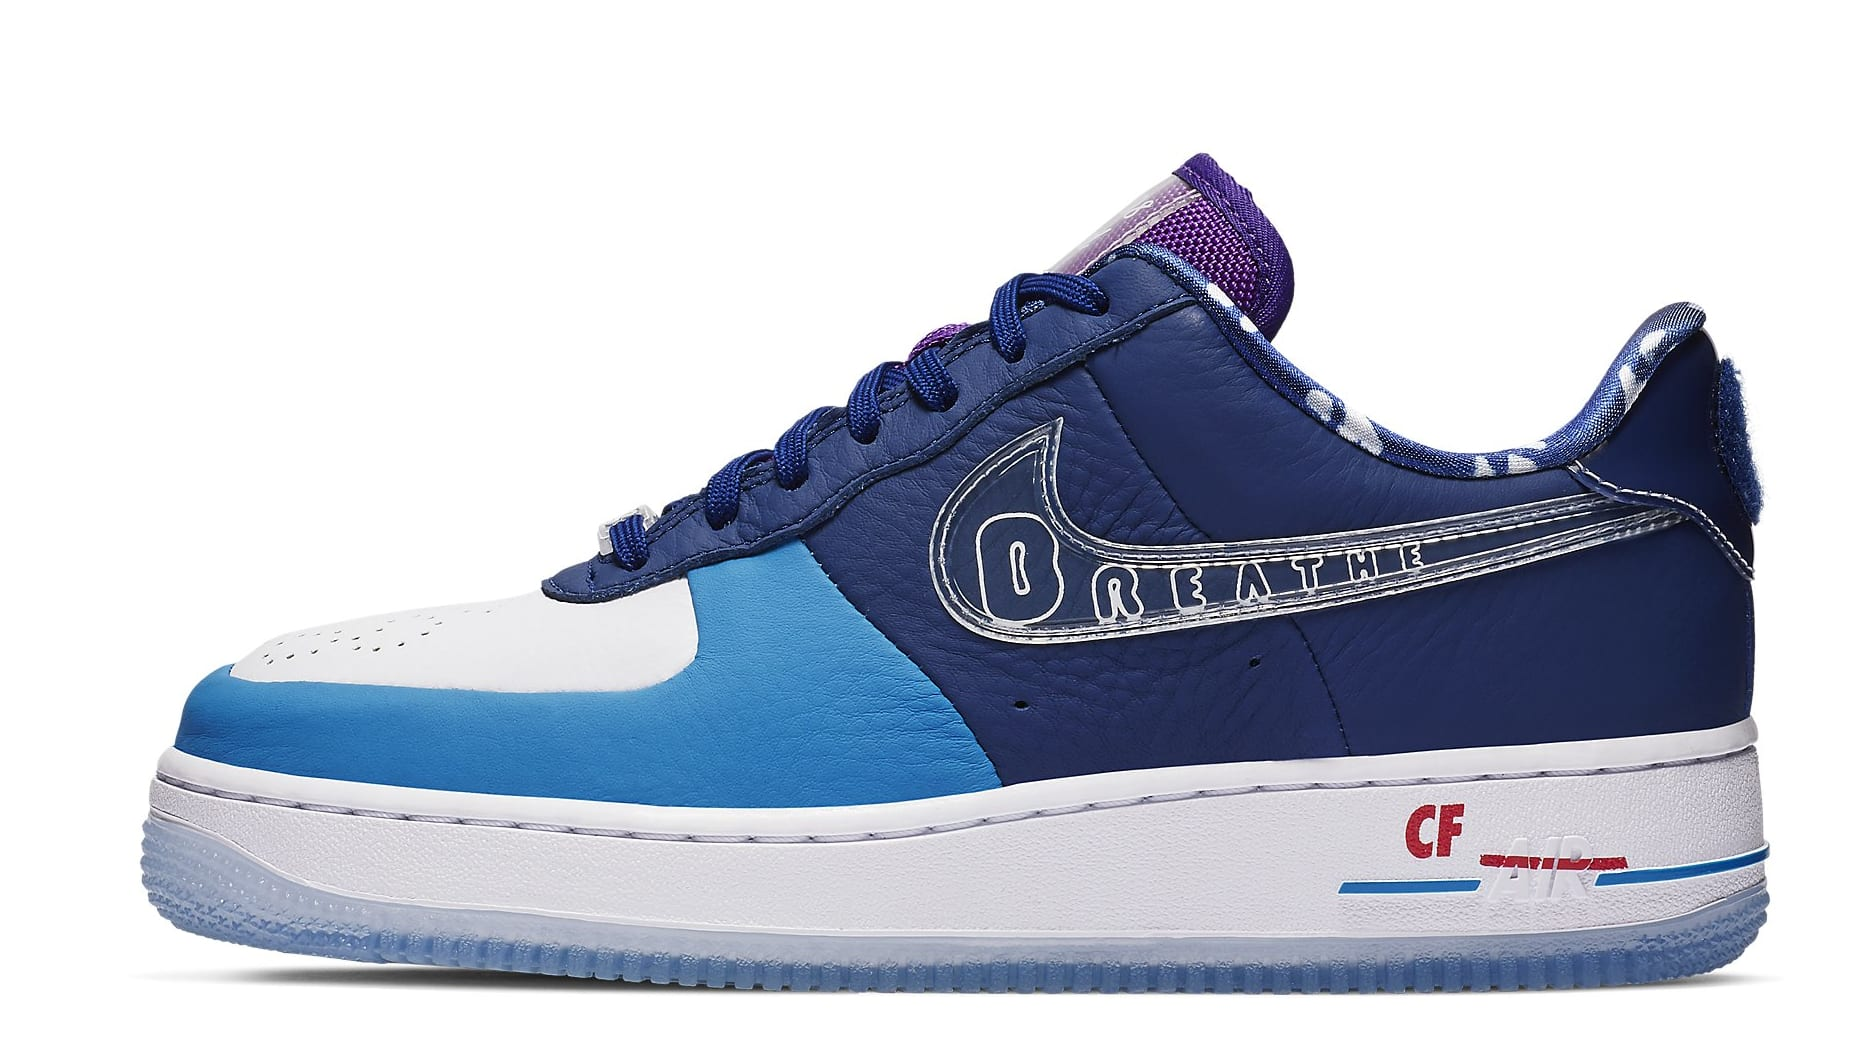 nike-doernbecher-2018-air-force-1-low-womens-bv7165-400-lateral